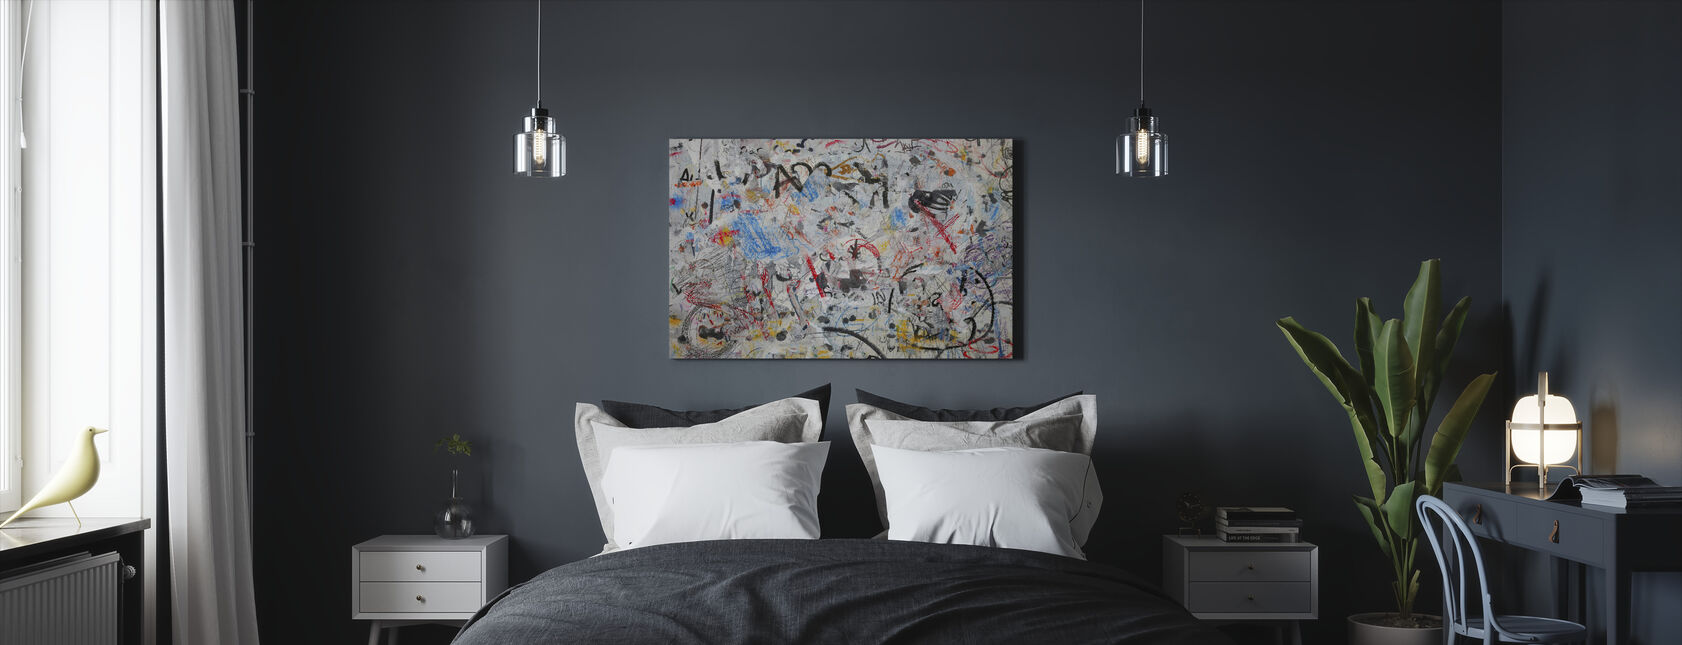 Grunge Graffiti Wall - Canvas print - Bedroom